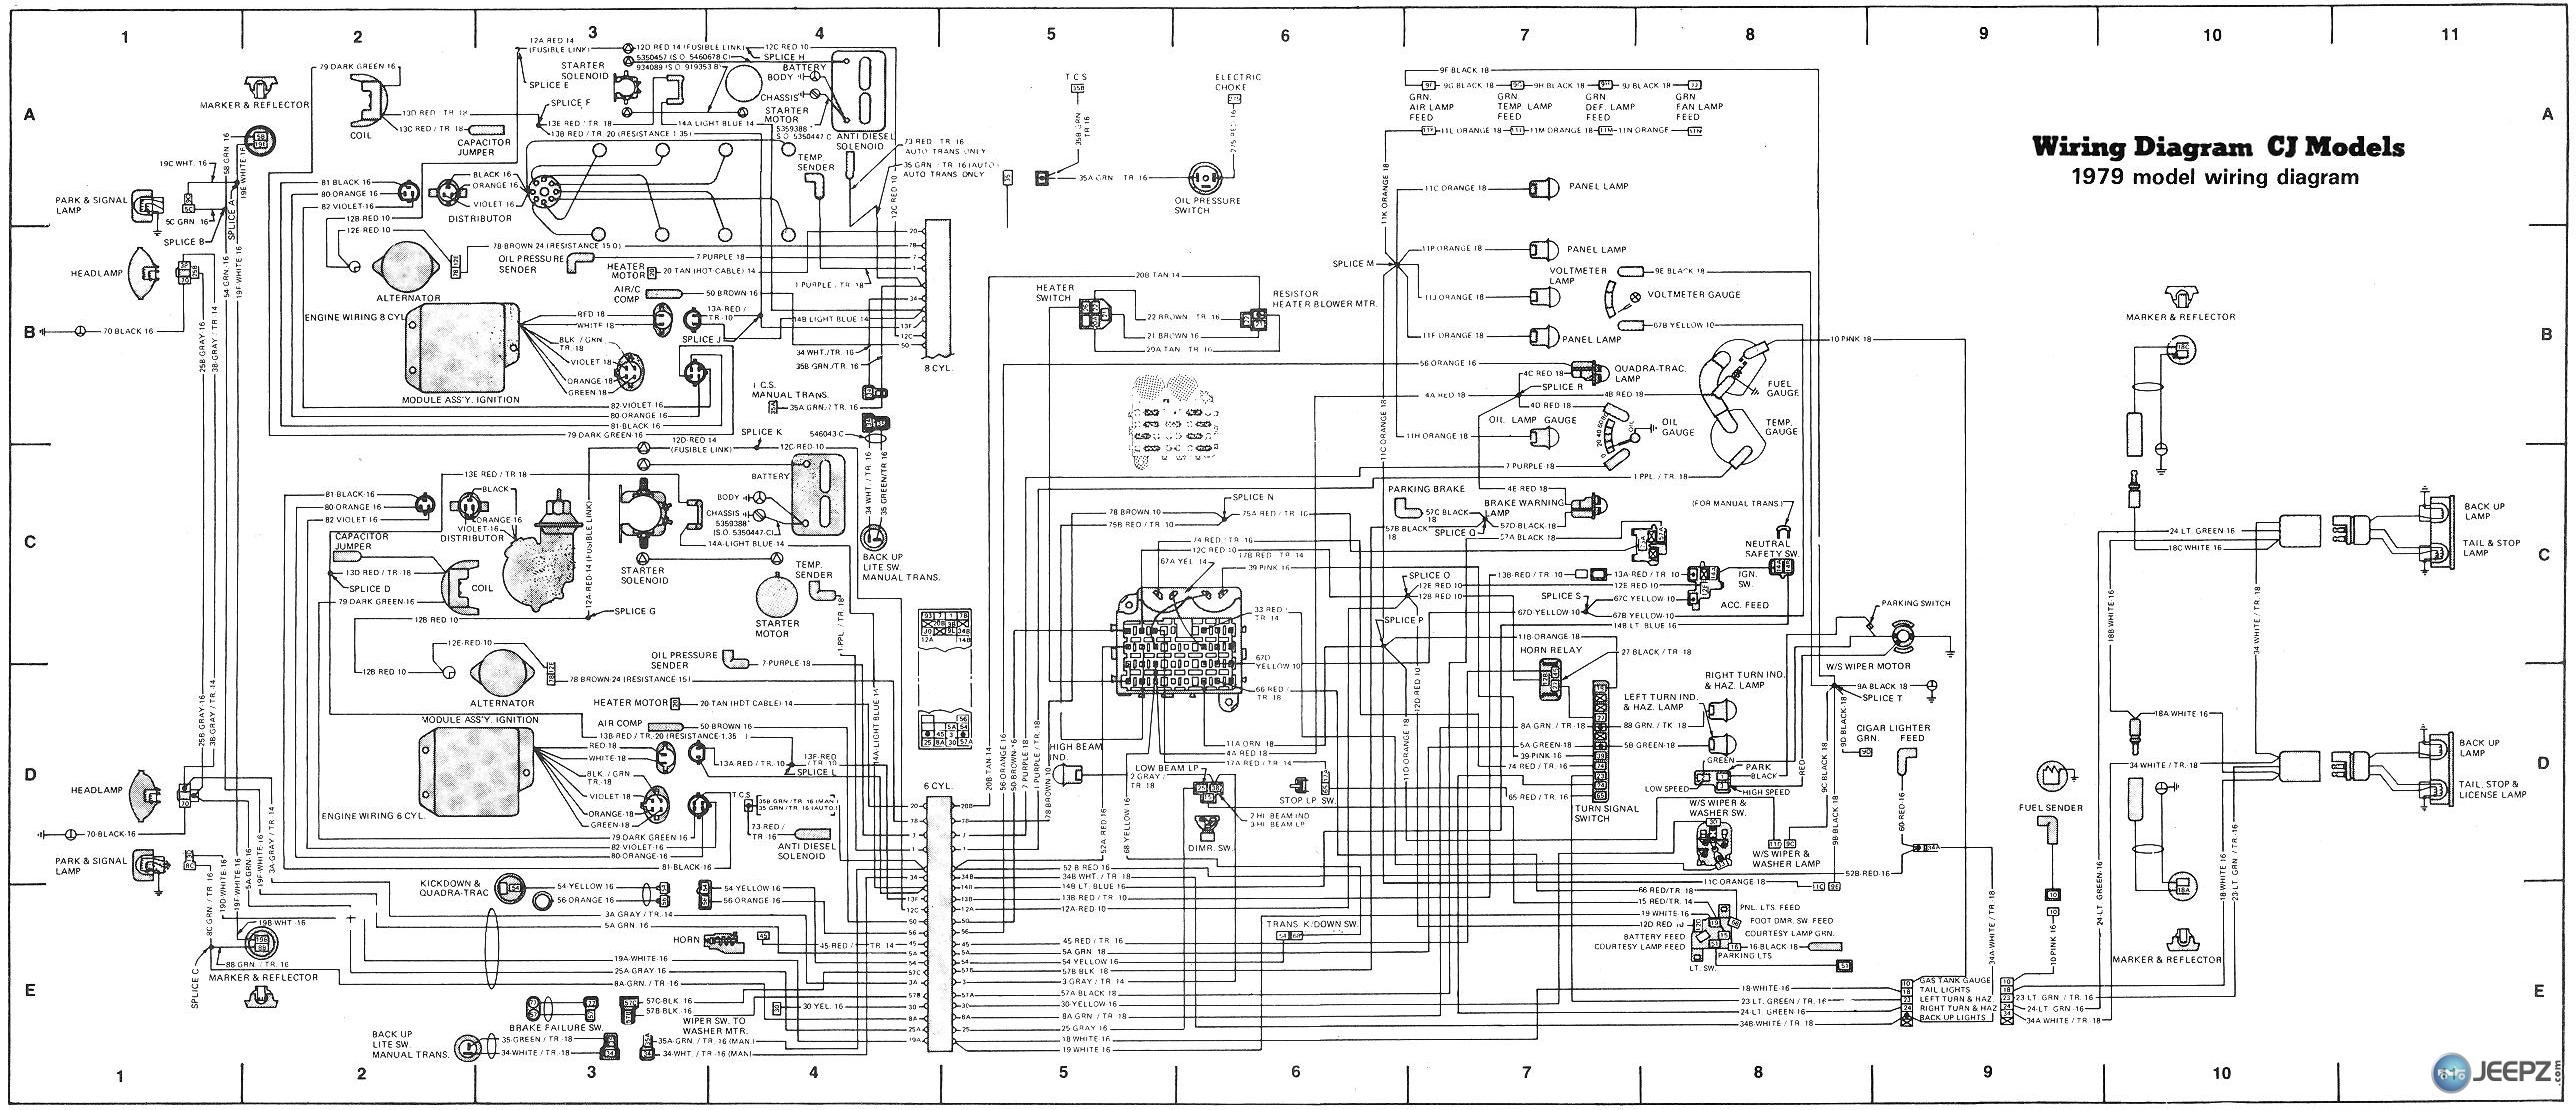 2016 jeep wrangler wiring diagram Download-Jeep Wrangler Jk Wiring Diagram Free Valid Jeep Cj5 Wiring Schematic Wiring Diagram 6-e